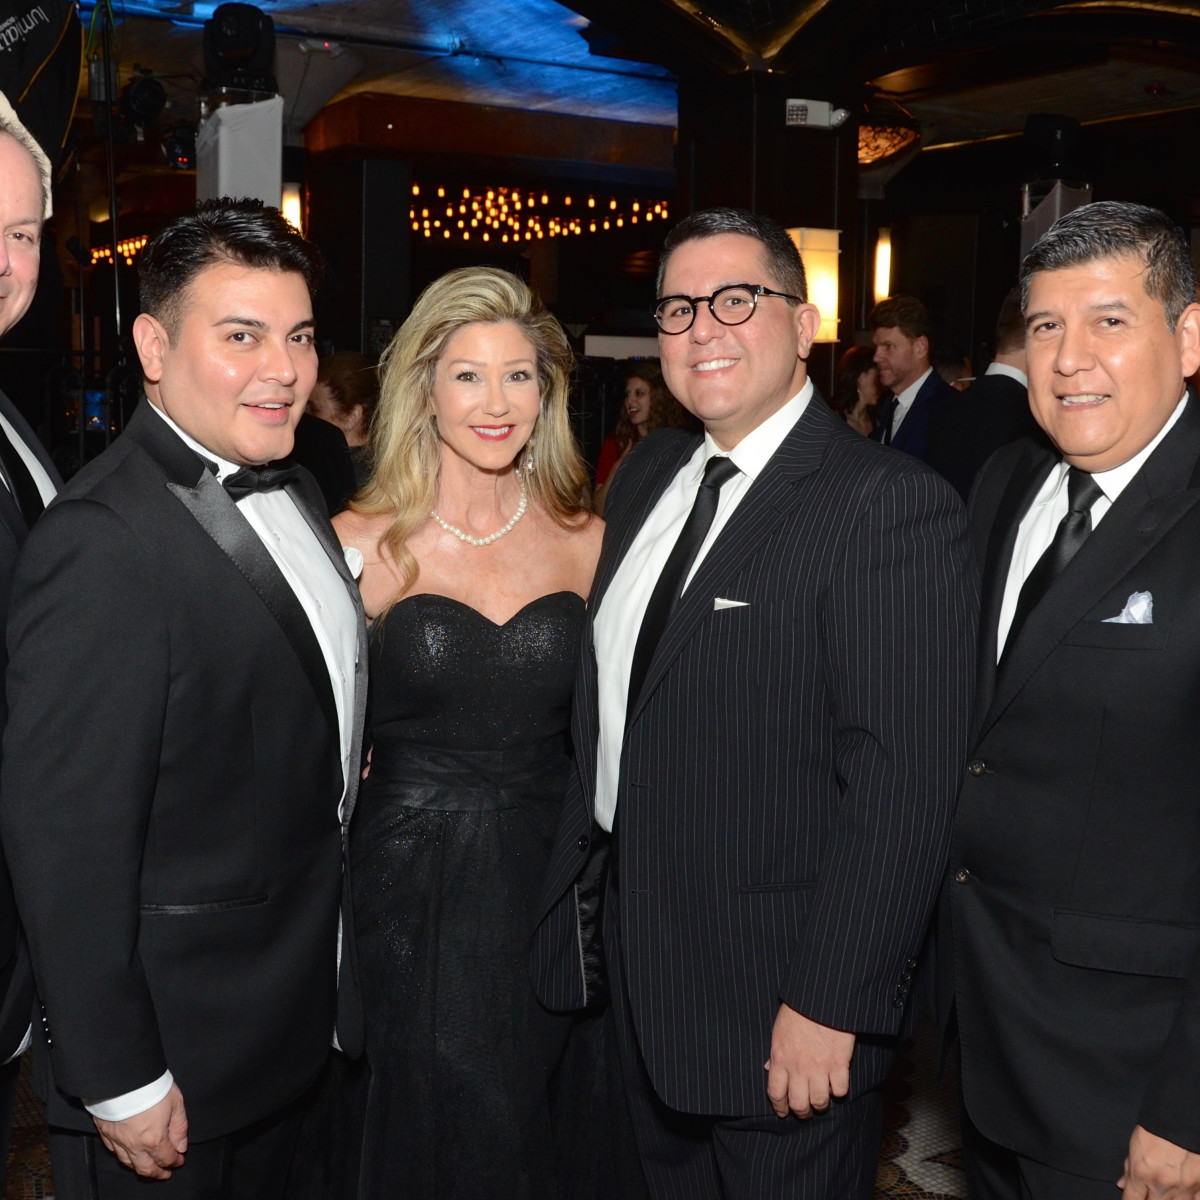 Scott Miller, Edward Sanchez, Patti Murphy, Roland Maldonado, Raul Diaz at Stages Gala